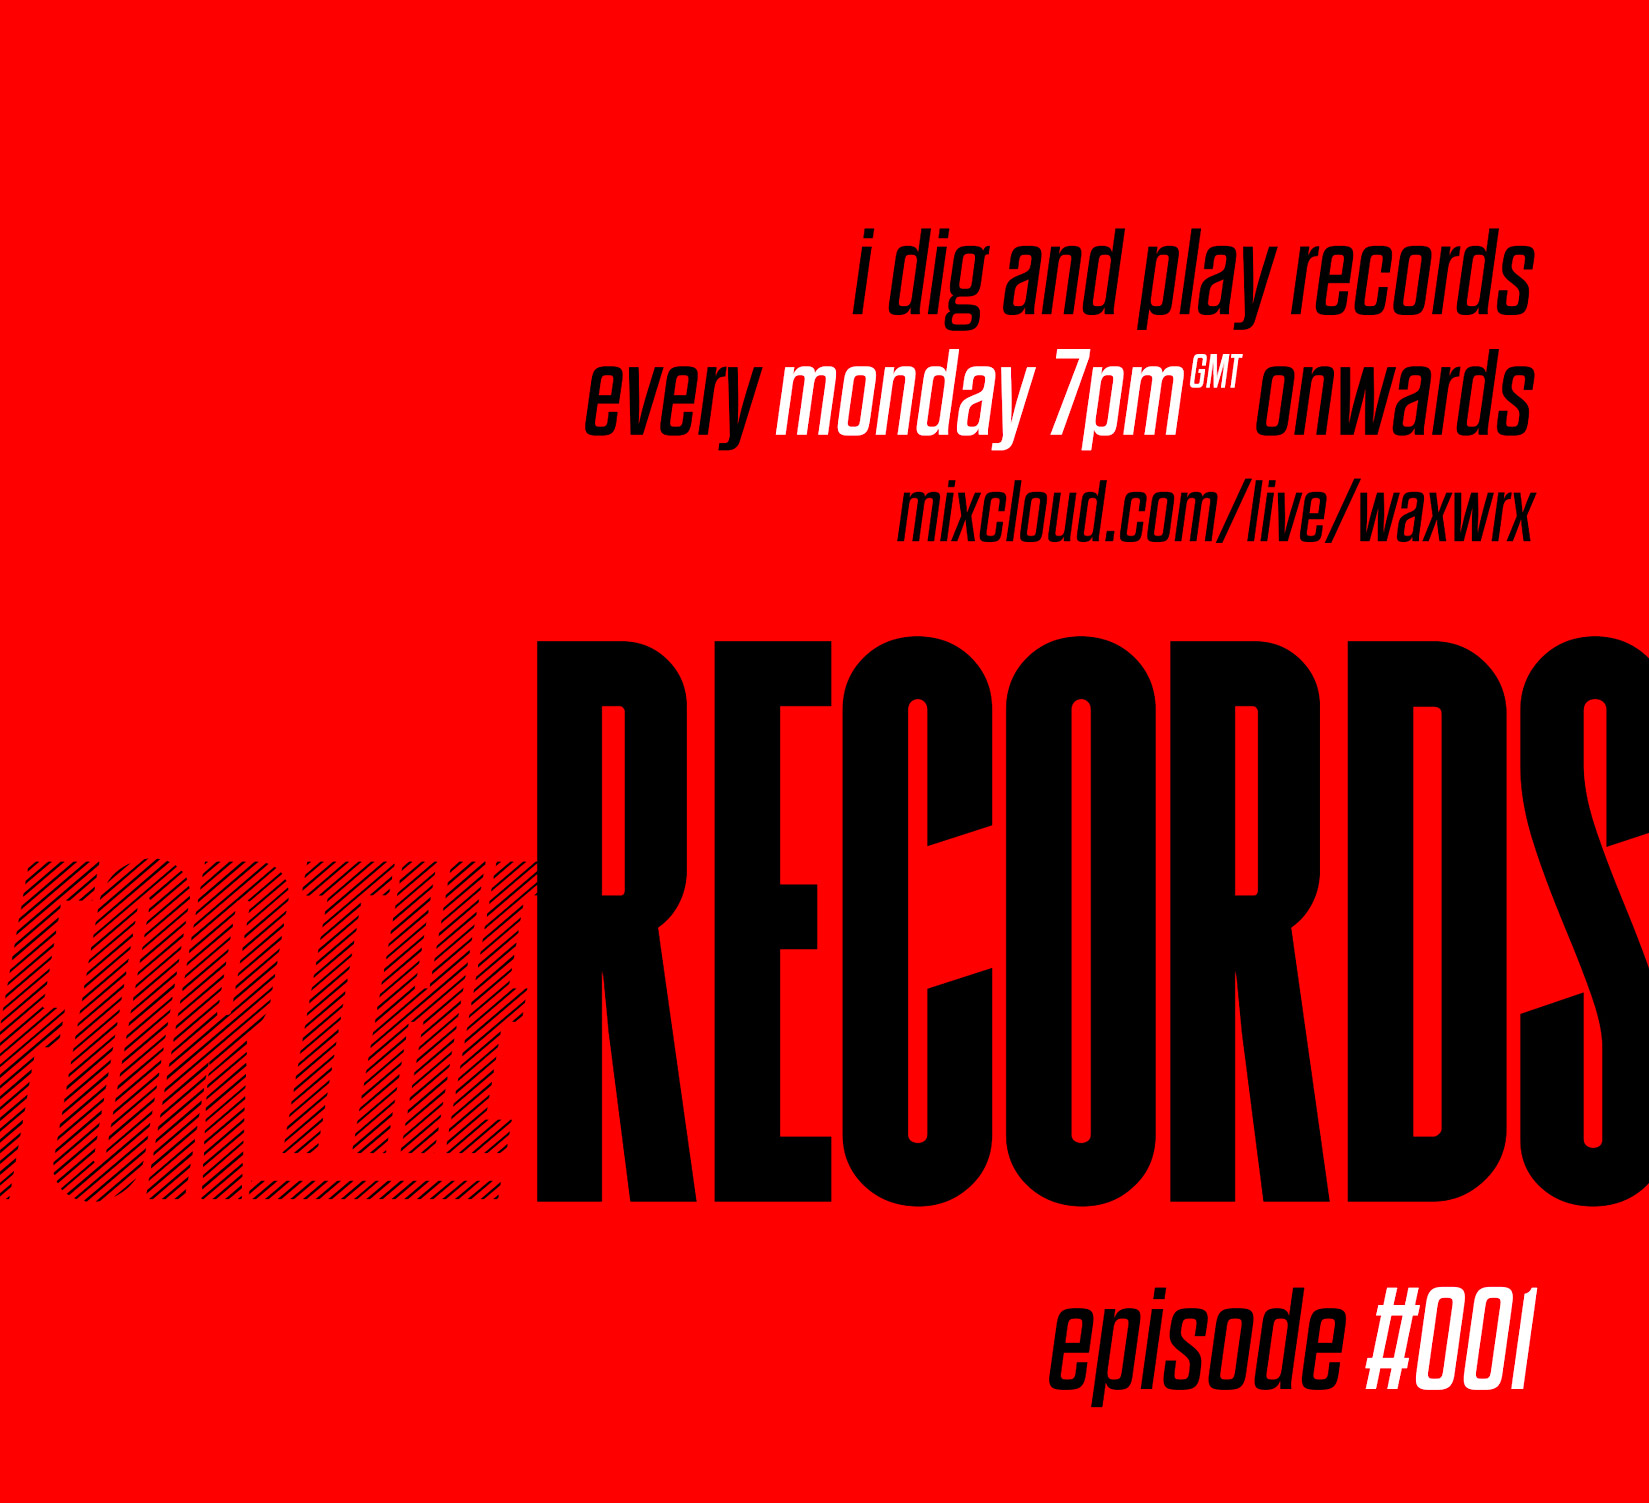 For The Records